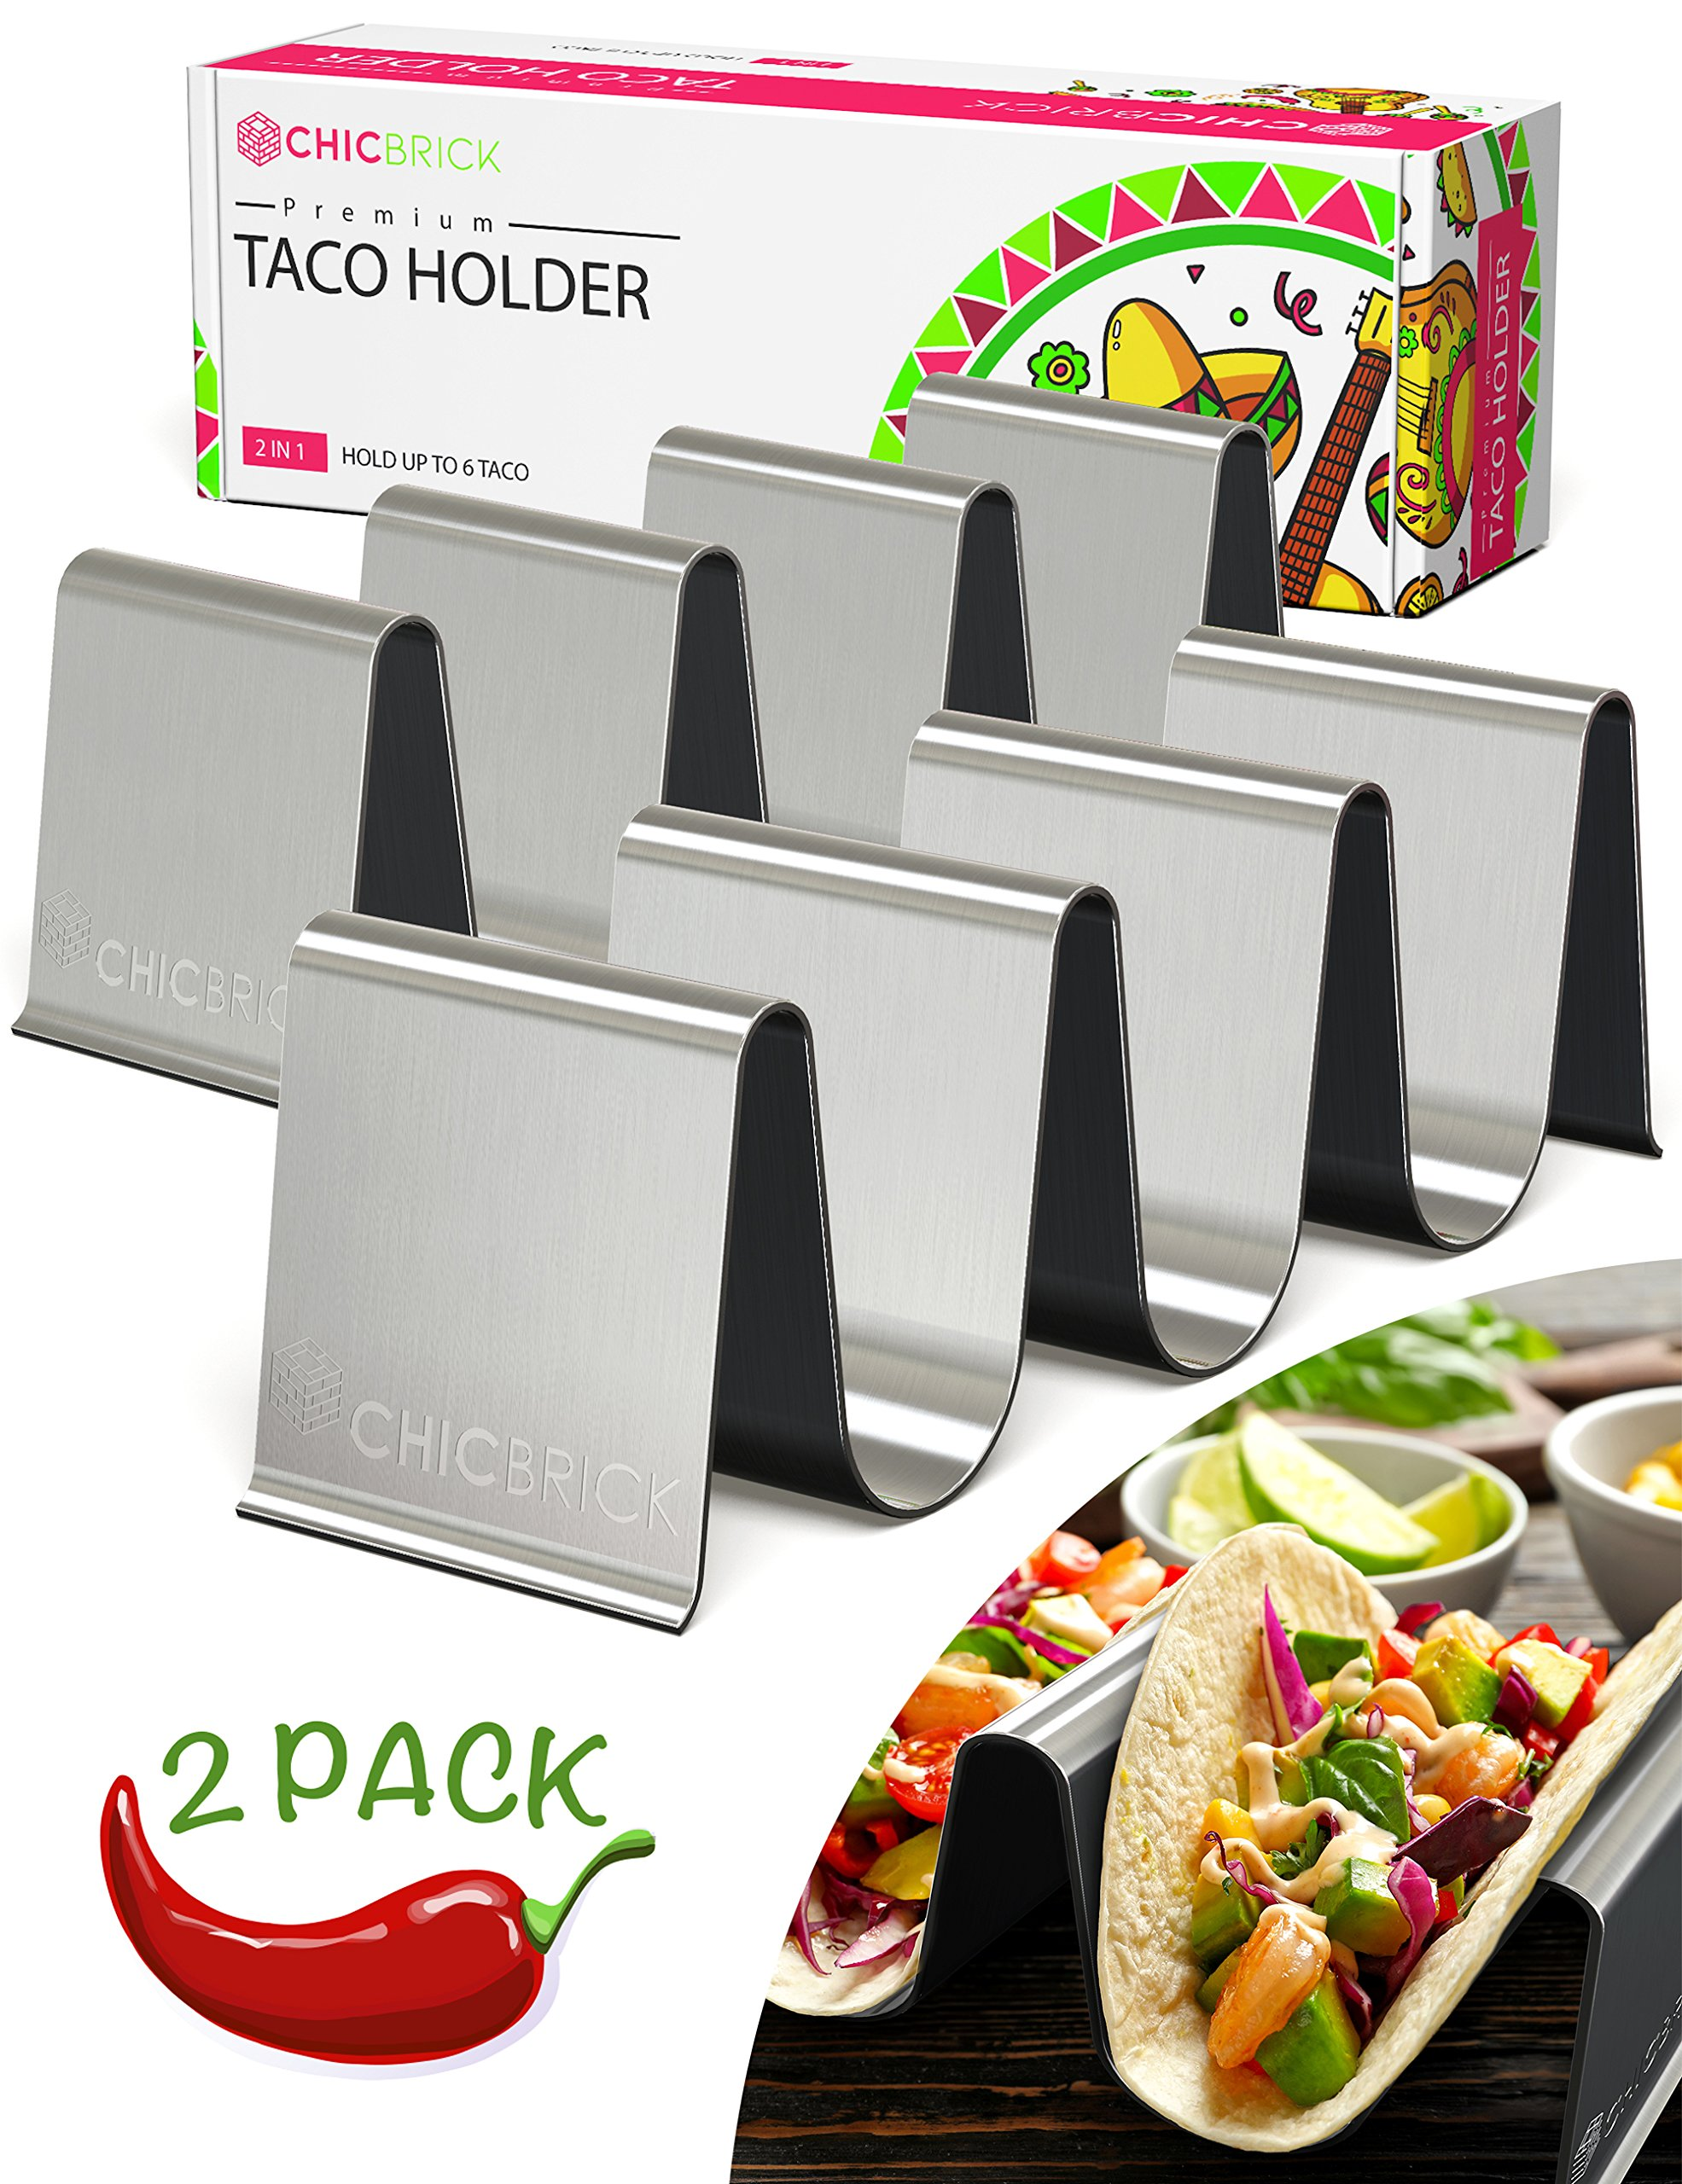 Taco Holder Stainless Steel Tray - Set of 2 Taco Stand, Ideal for Taco Tuesday & Kids Party Oven Baking, Dishwasher and Grill Safe - Tortilla Rack, Taco Stand Up Plate Truck Style, Restaurant and Home by ChicBrick